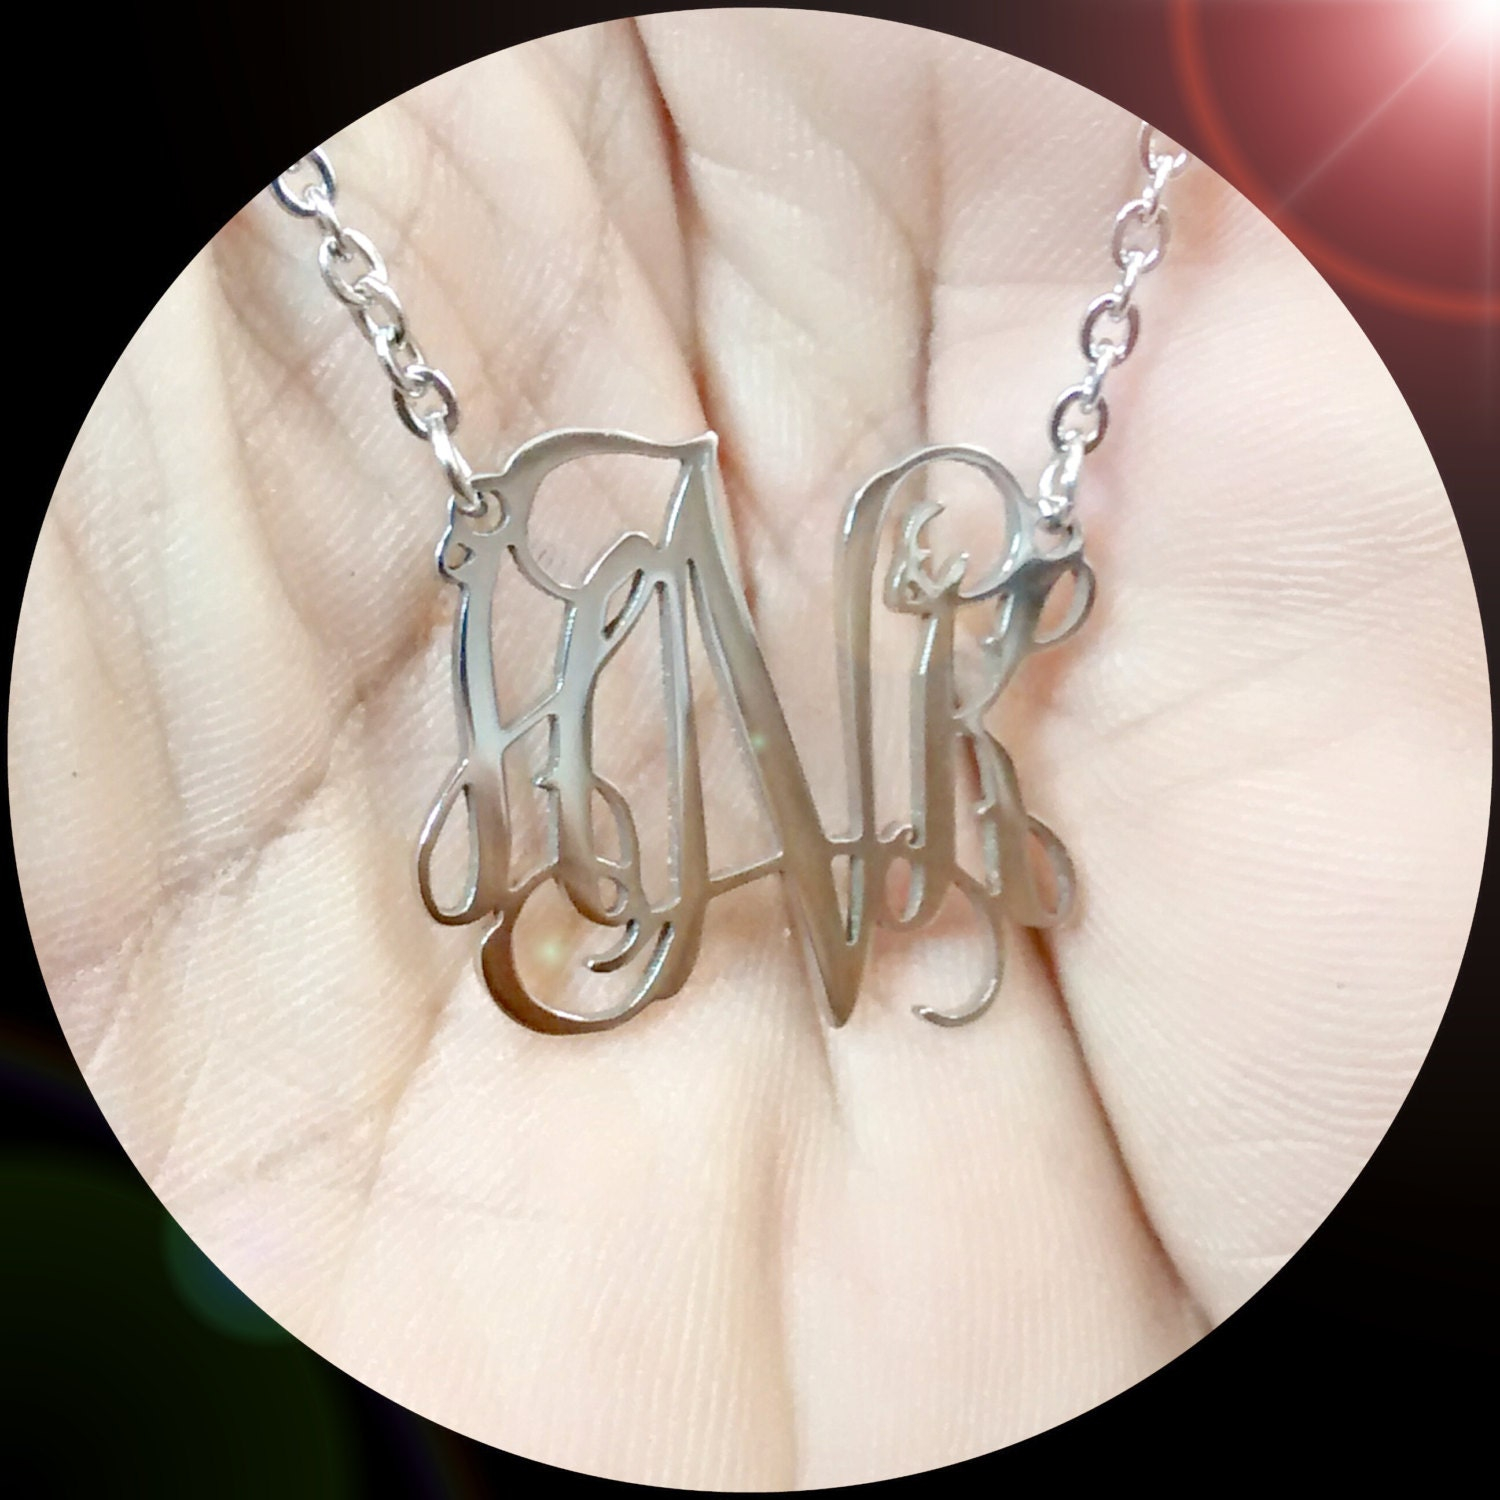 surg jewelry steel monogram necklace custom metal jewelry surgical 2902